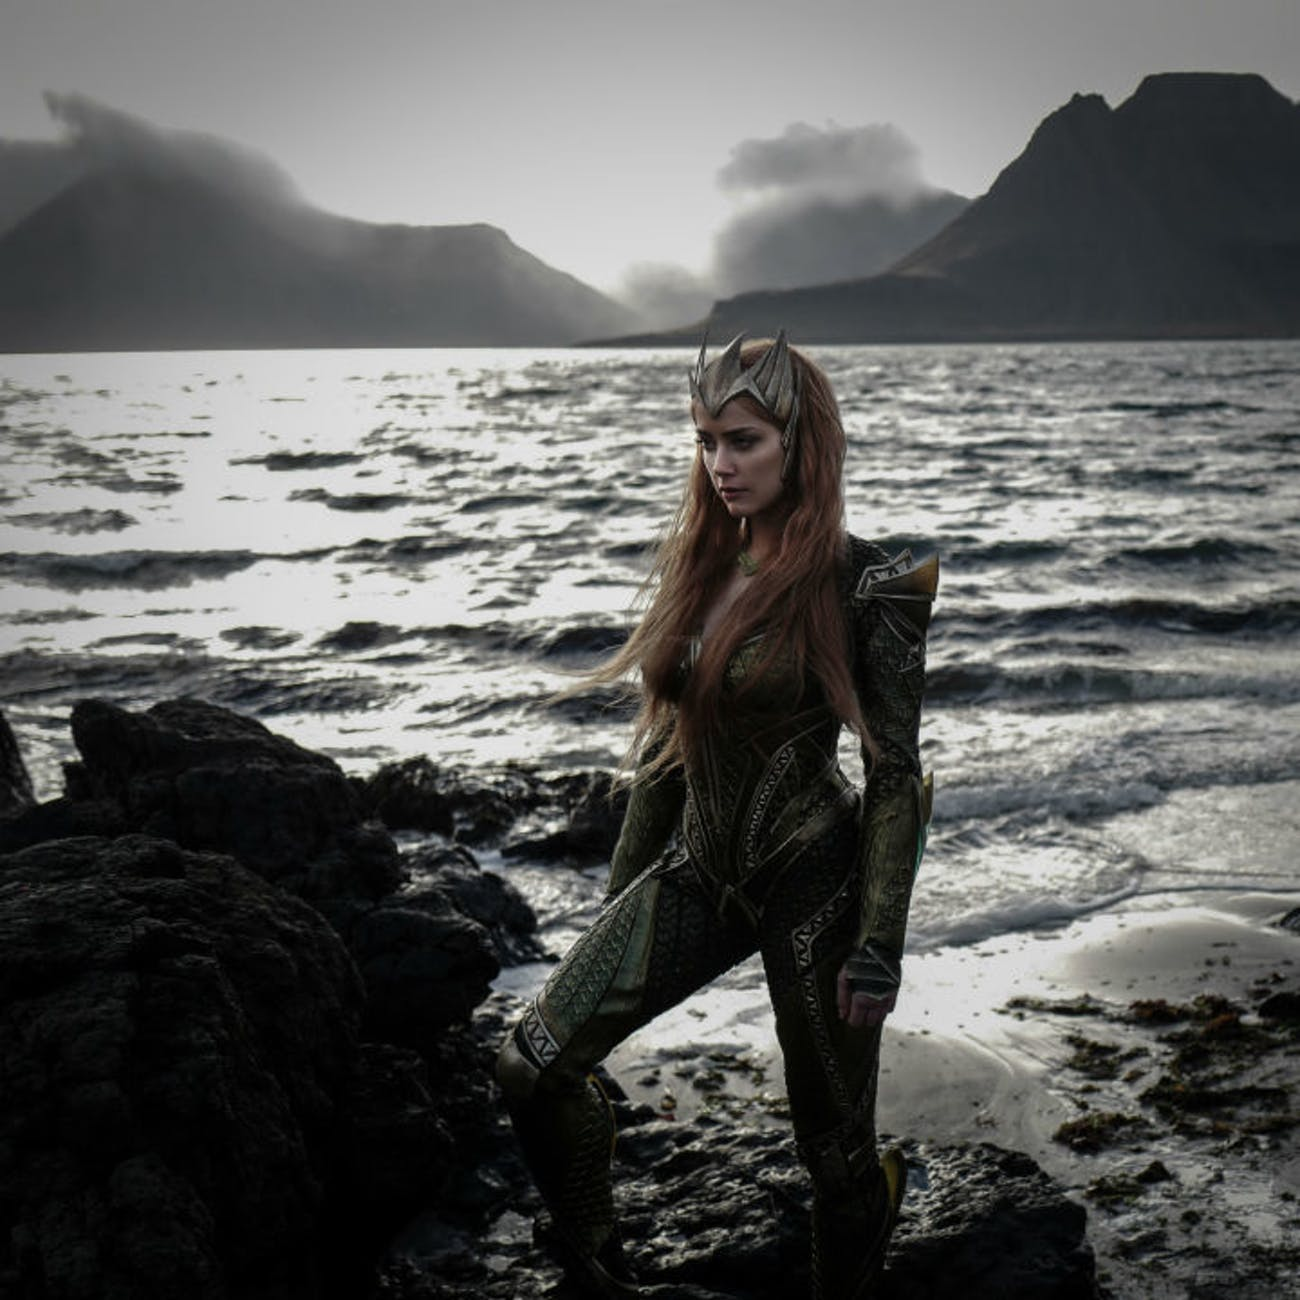 Amber Heard as Mera in pre-production still from Justice League by Zack Snyder